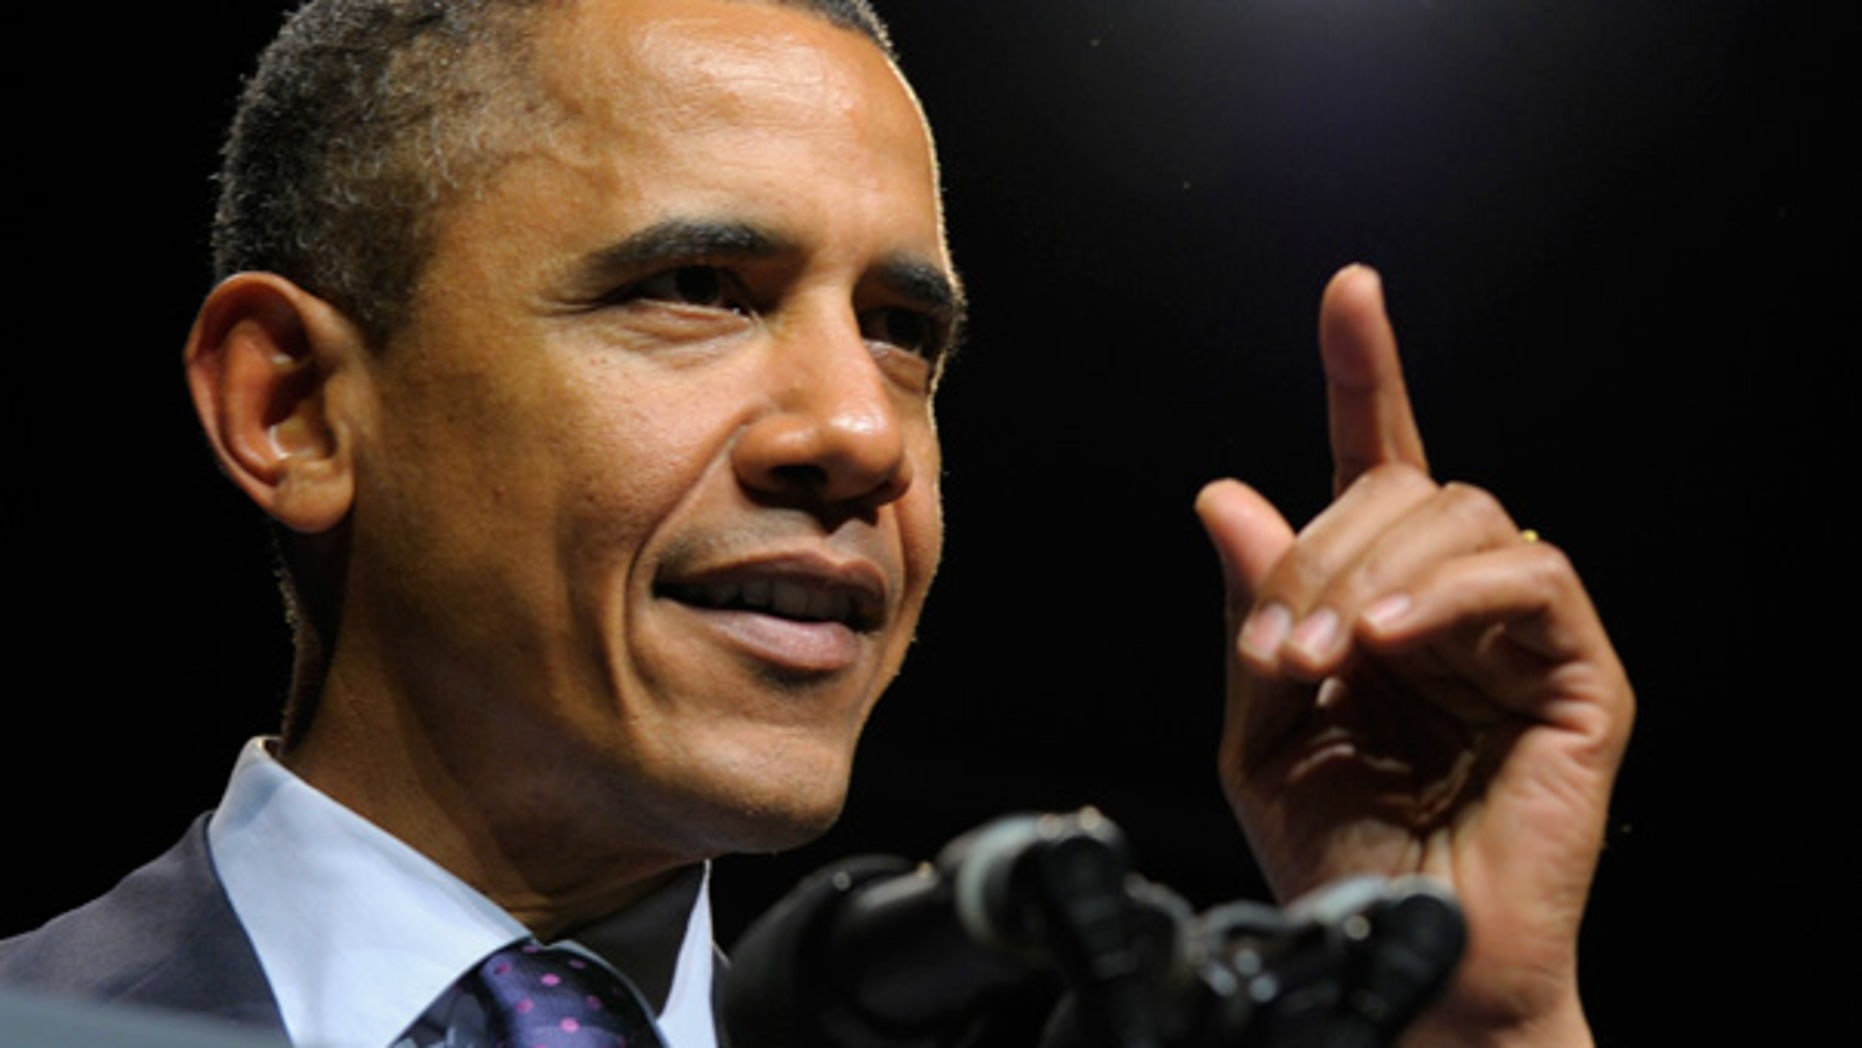 Sept. 30: President Obama speaks at the Democratic National Committee Gen44 event in Washington.